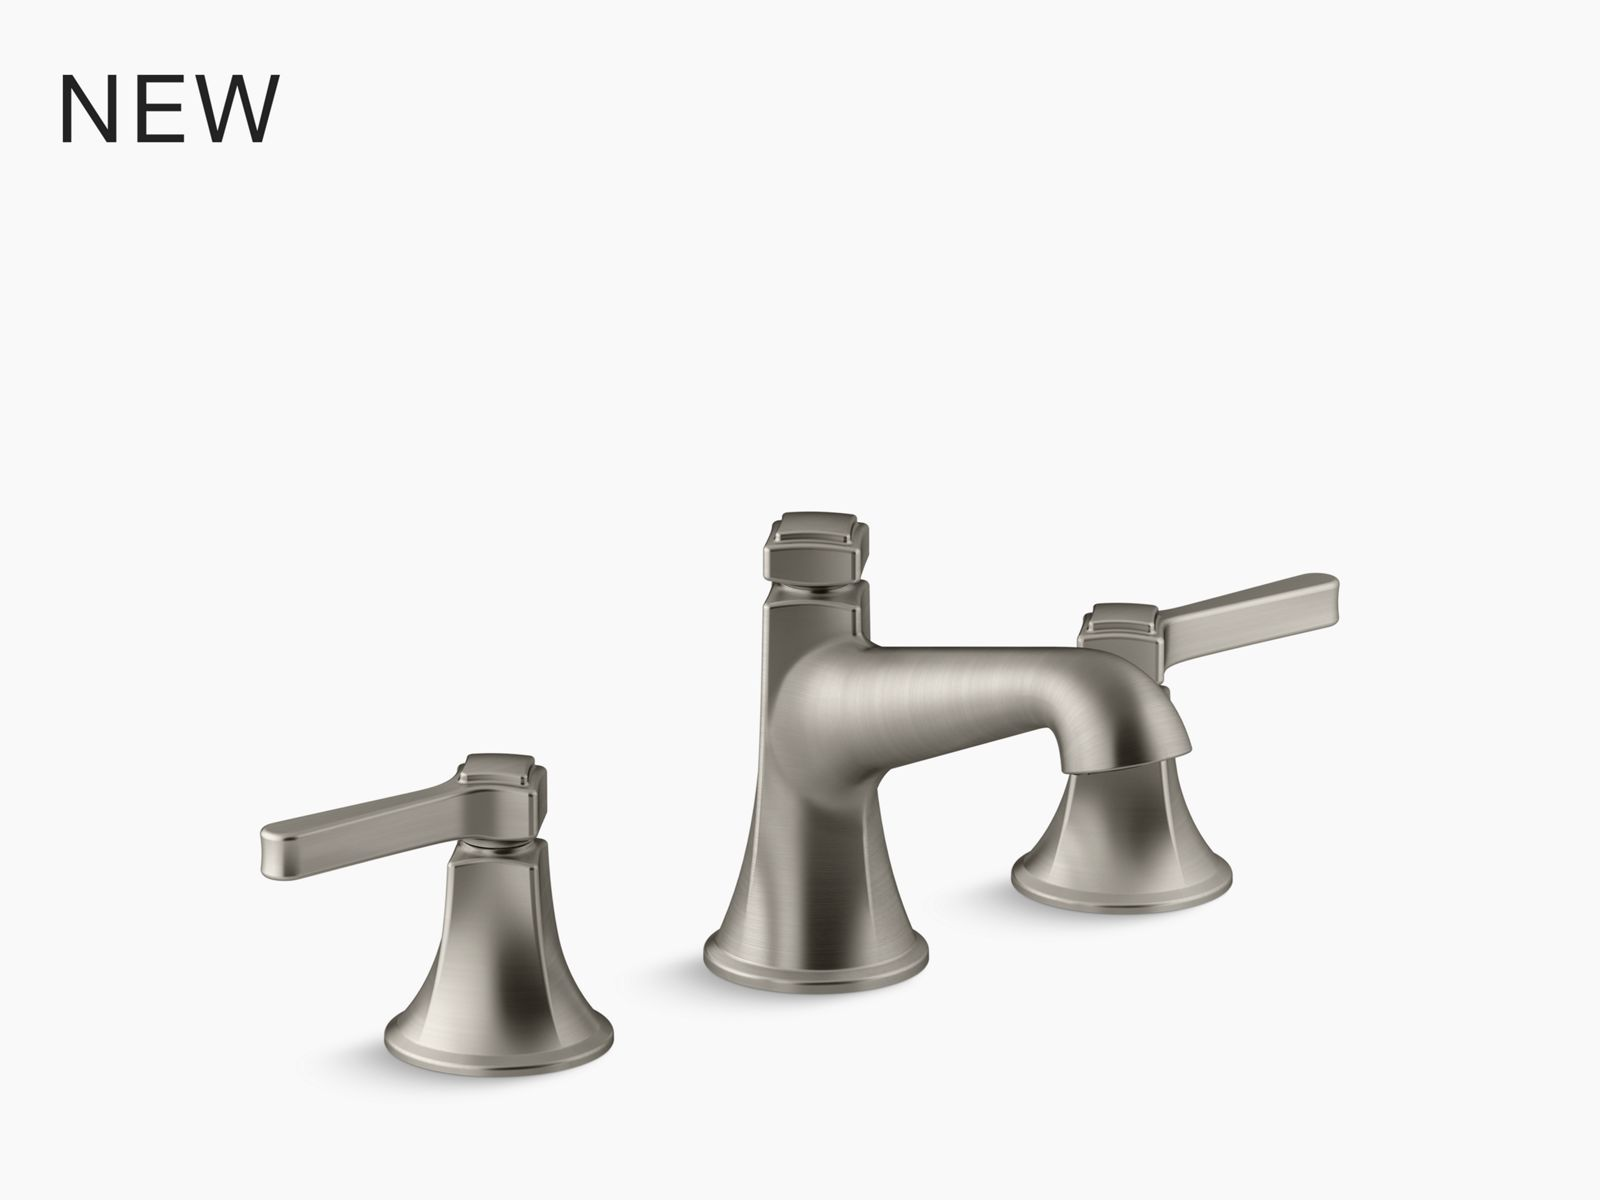 pinstripe deck mount bath faucet trim for high flow valve with cross handles valve not included